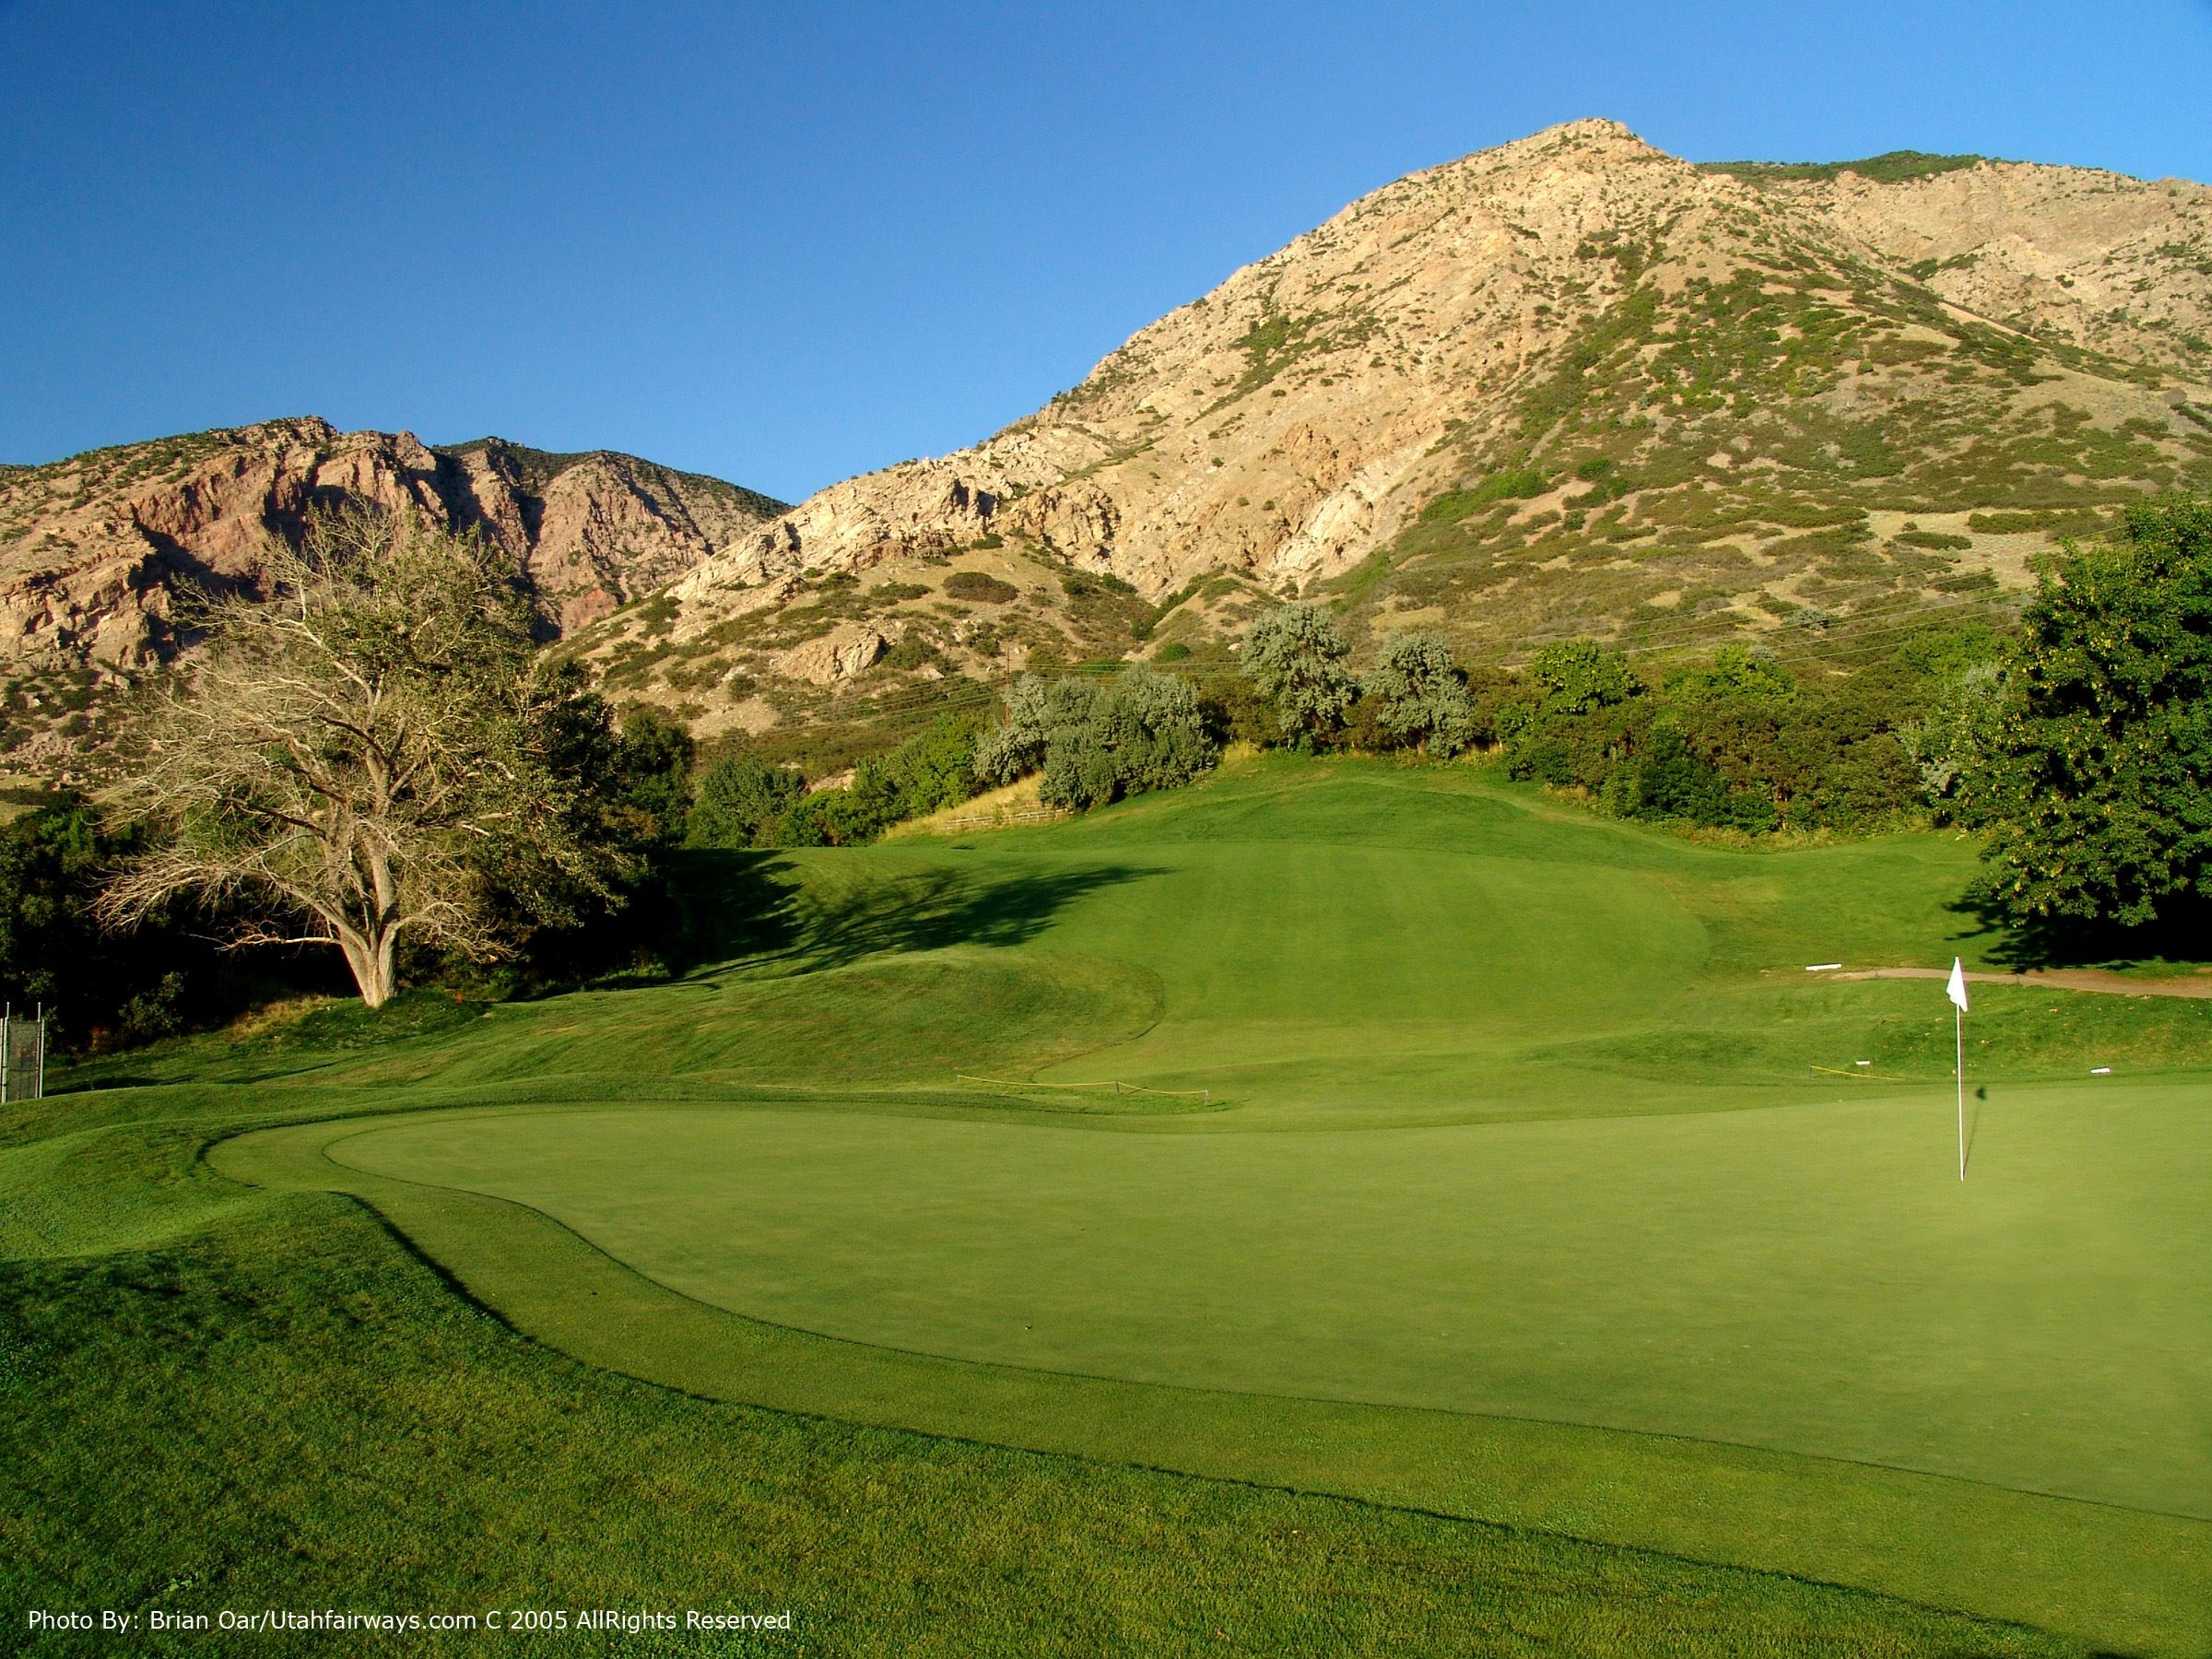 One of the greens at Mount Ogden Golf Course with a mountain in the background.